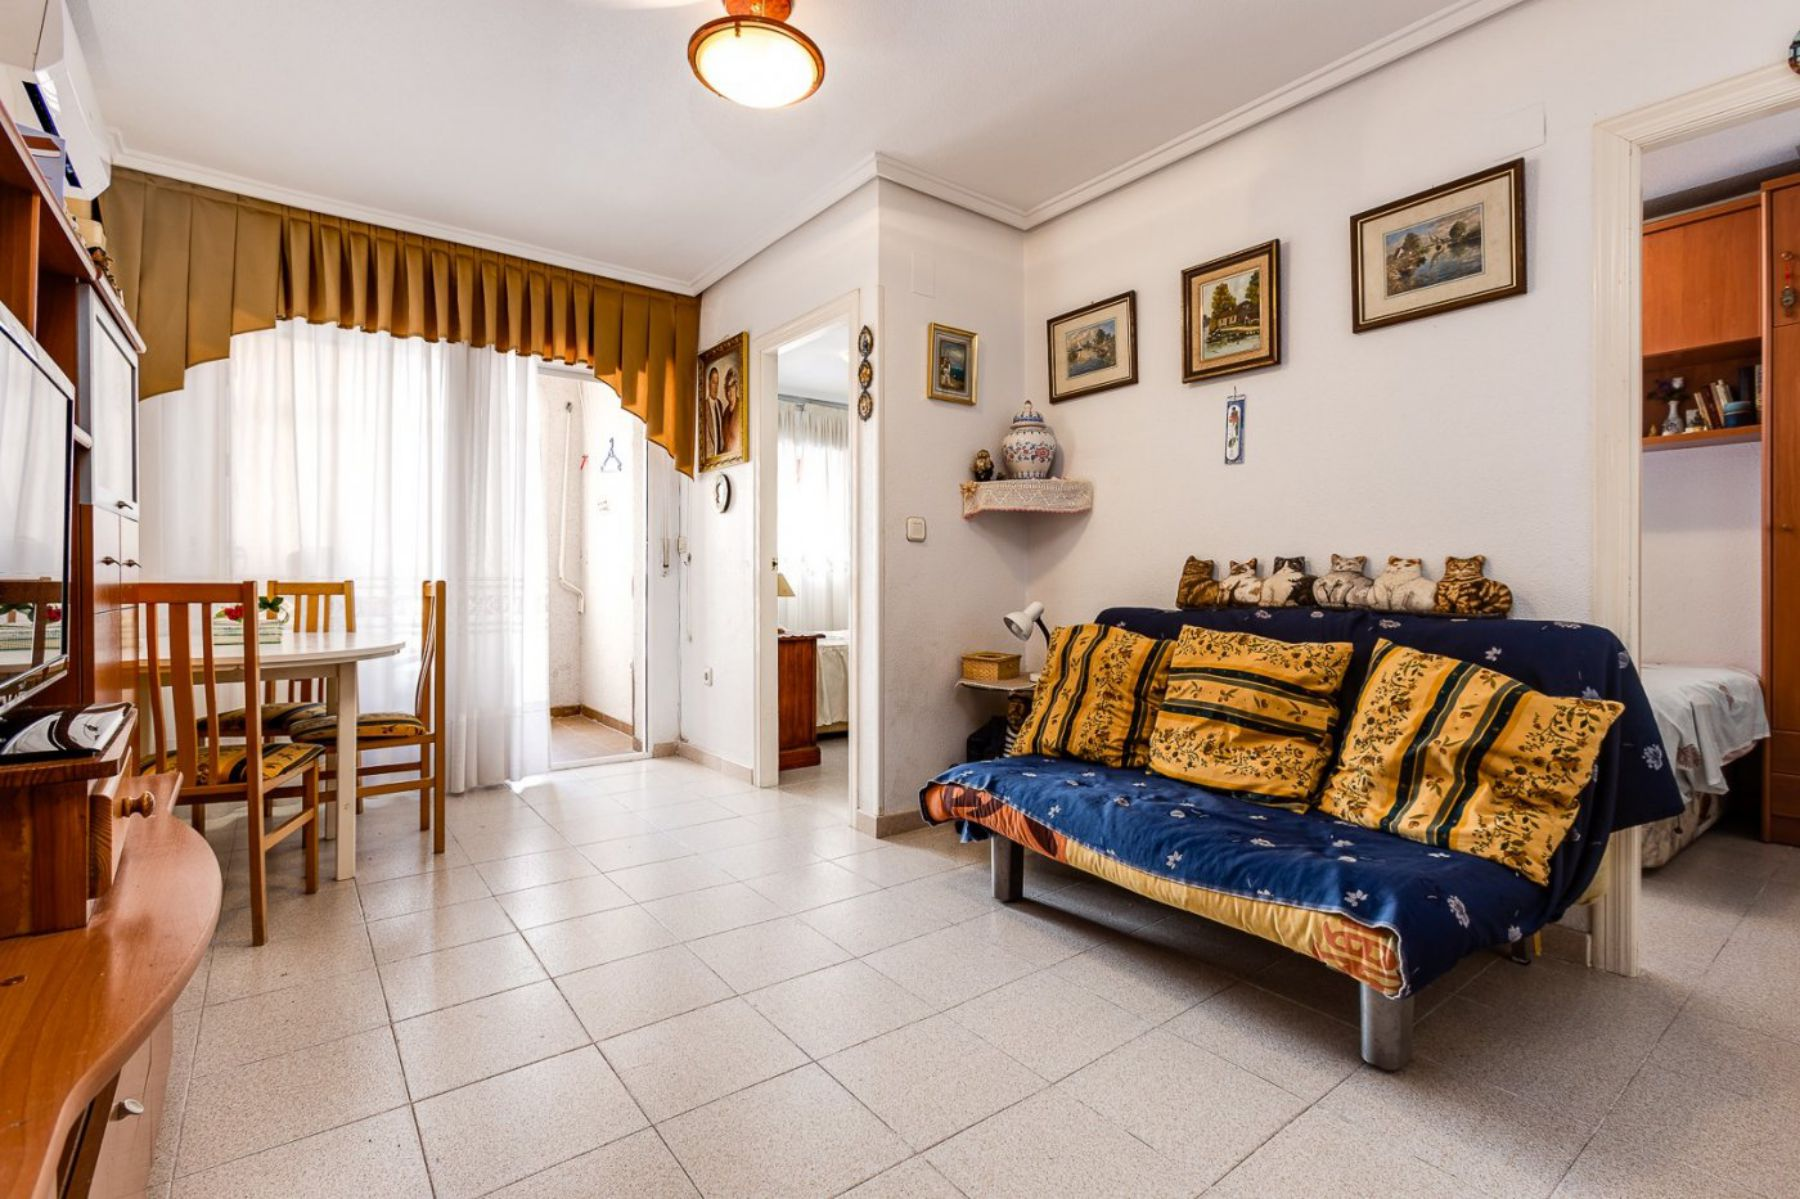 2 Bedrooms Apartment Just 250 Meters From Acequion Beach - Torrevieja